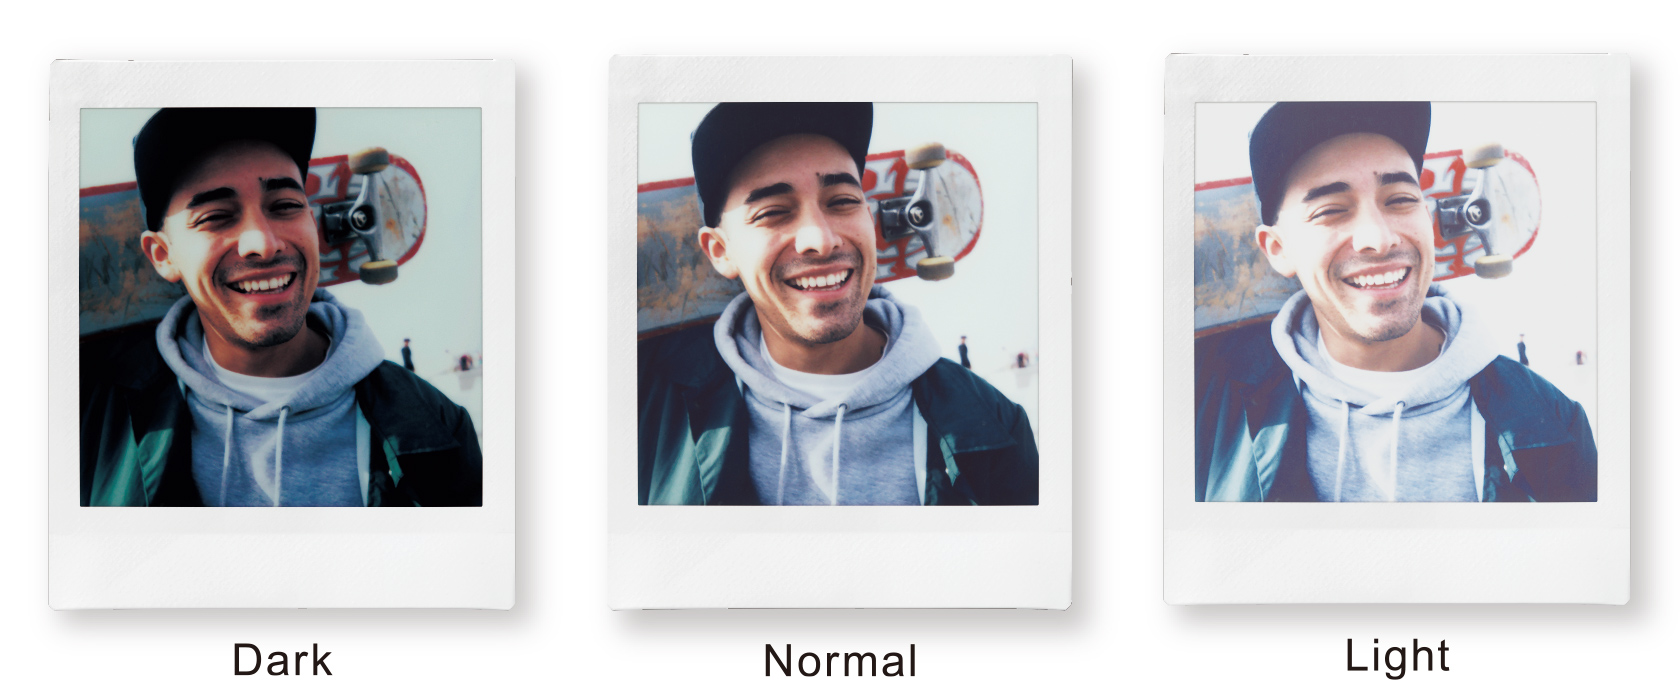 Image of three photos of a smiling man with one photo being darker one photo being lighter and one being normal